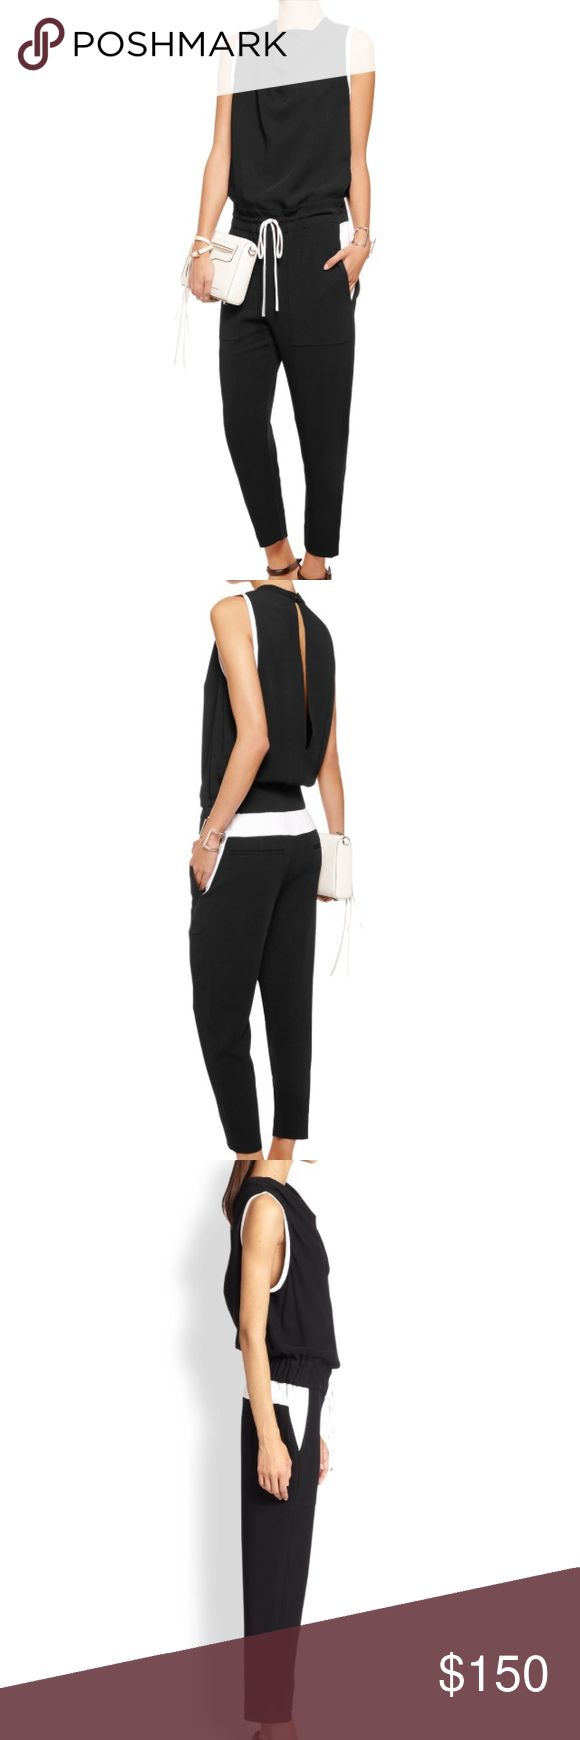 """Helmut Lang Torsion Cropped Jumpsuit size 2 Helmut Lang Torsion Cropped Jumpsuit w/ Tags size 2  Black and white Helmut Lang Torsion jumpsuit with cropped silhouette, dual slip pockets at sides, dual welt pockets and slit at back with snap button closure at nape and drawstring closure at waist.  ColorBlack, White  Condition pristine  Bust: 34""""  Waist: 31""""  Hip: 35""""  Rise: 9.5""""  Inseam: 22.5""""  Leg Opening: 11""""  Estimated Retail: $540.00  Condition: Pristine  Fabric: 95% Viscose, 5% Elastane…"""